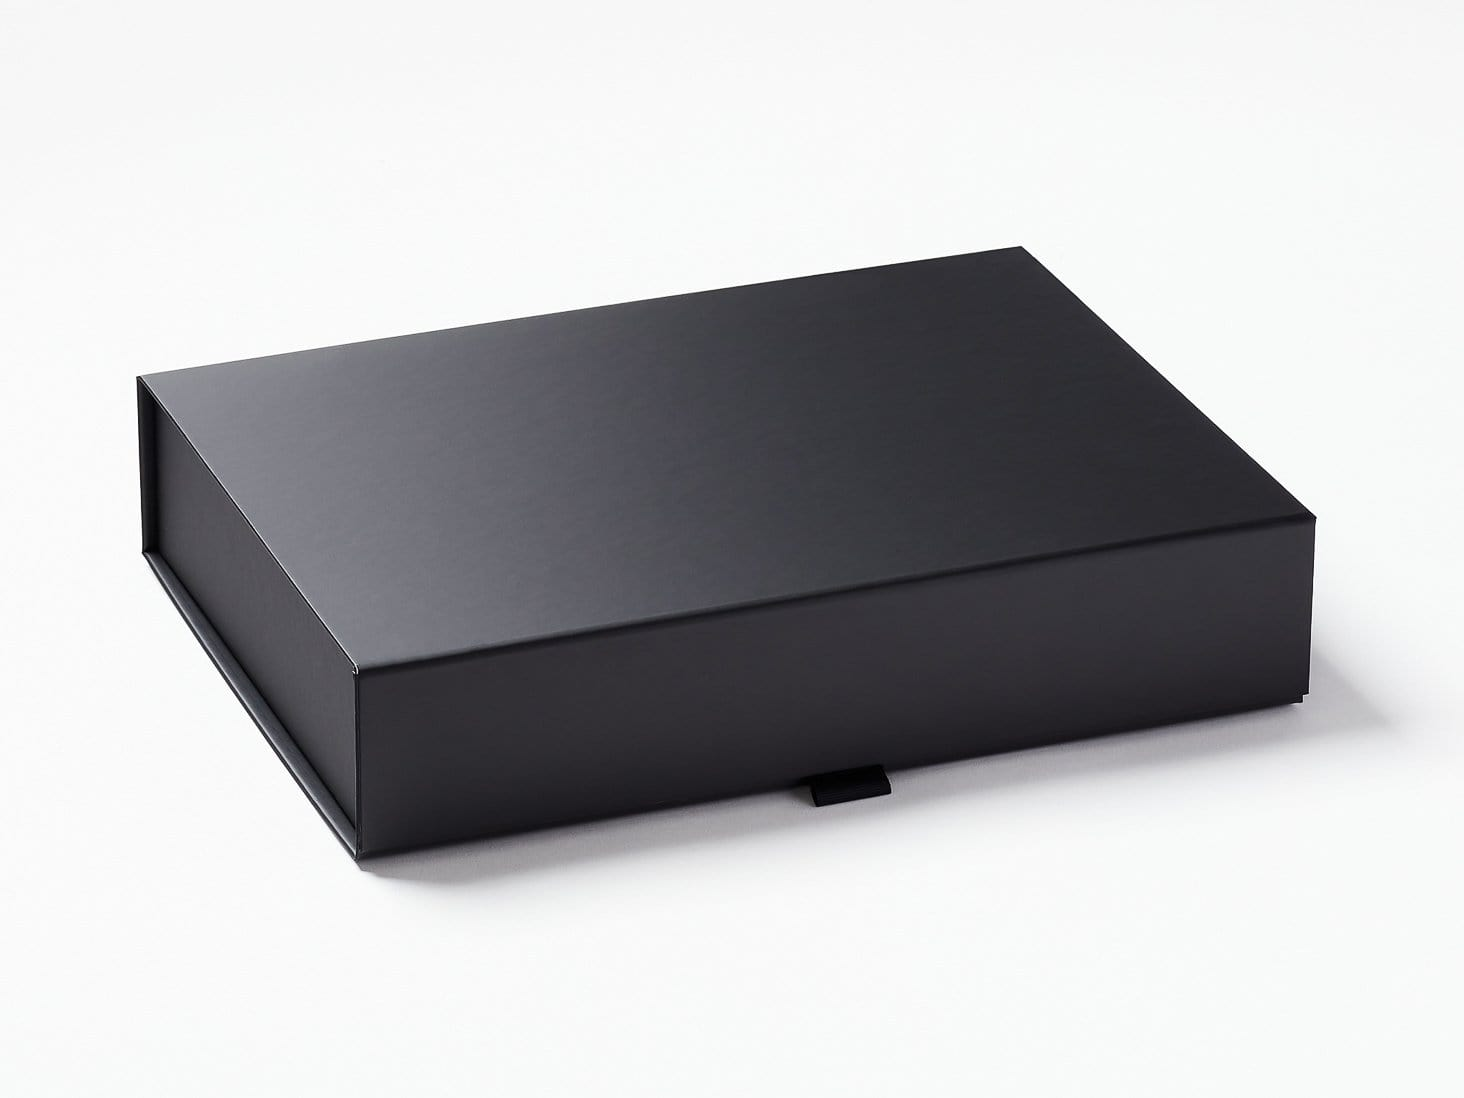 Black A4 Shallow Luxury Gift Box